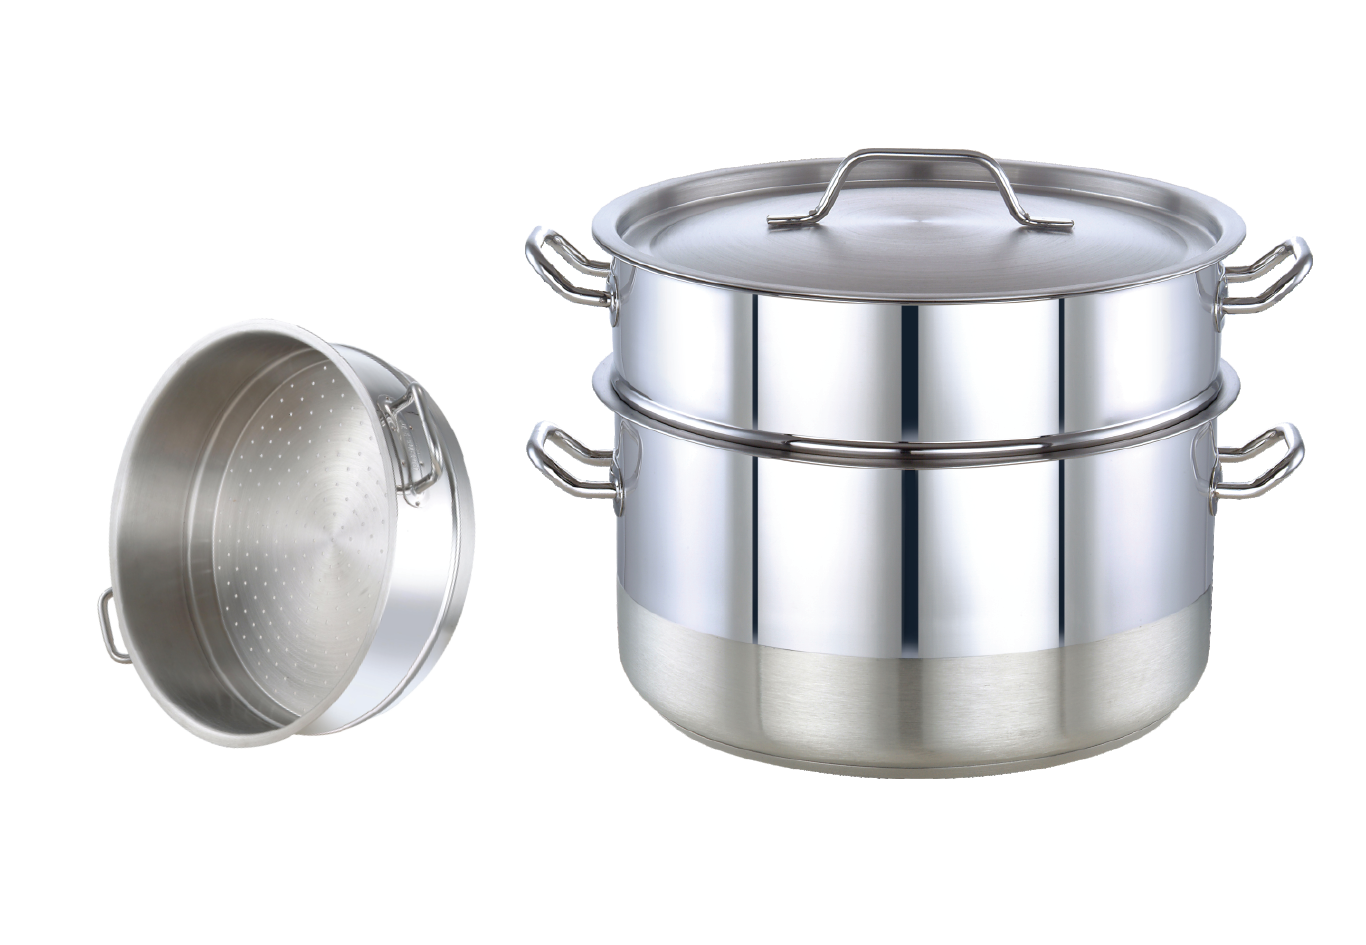 Stainless Steel Cook Pot